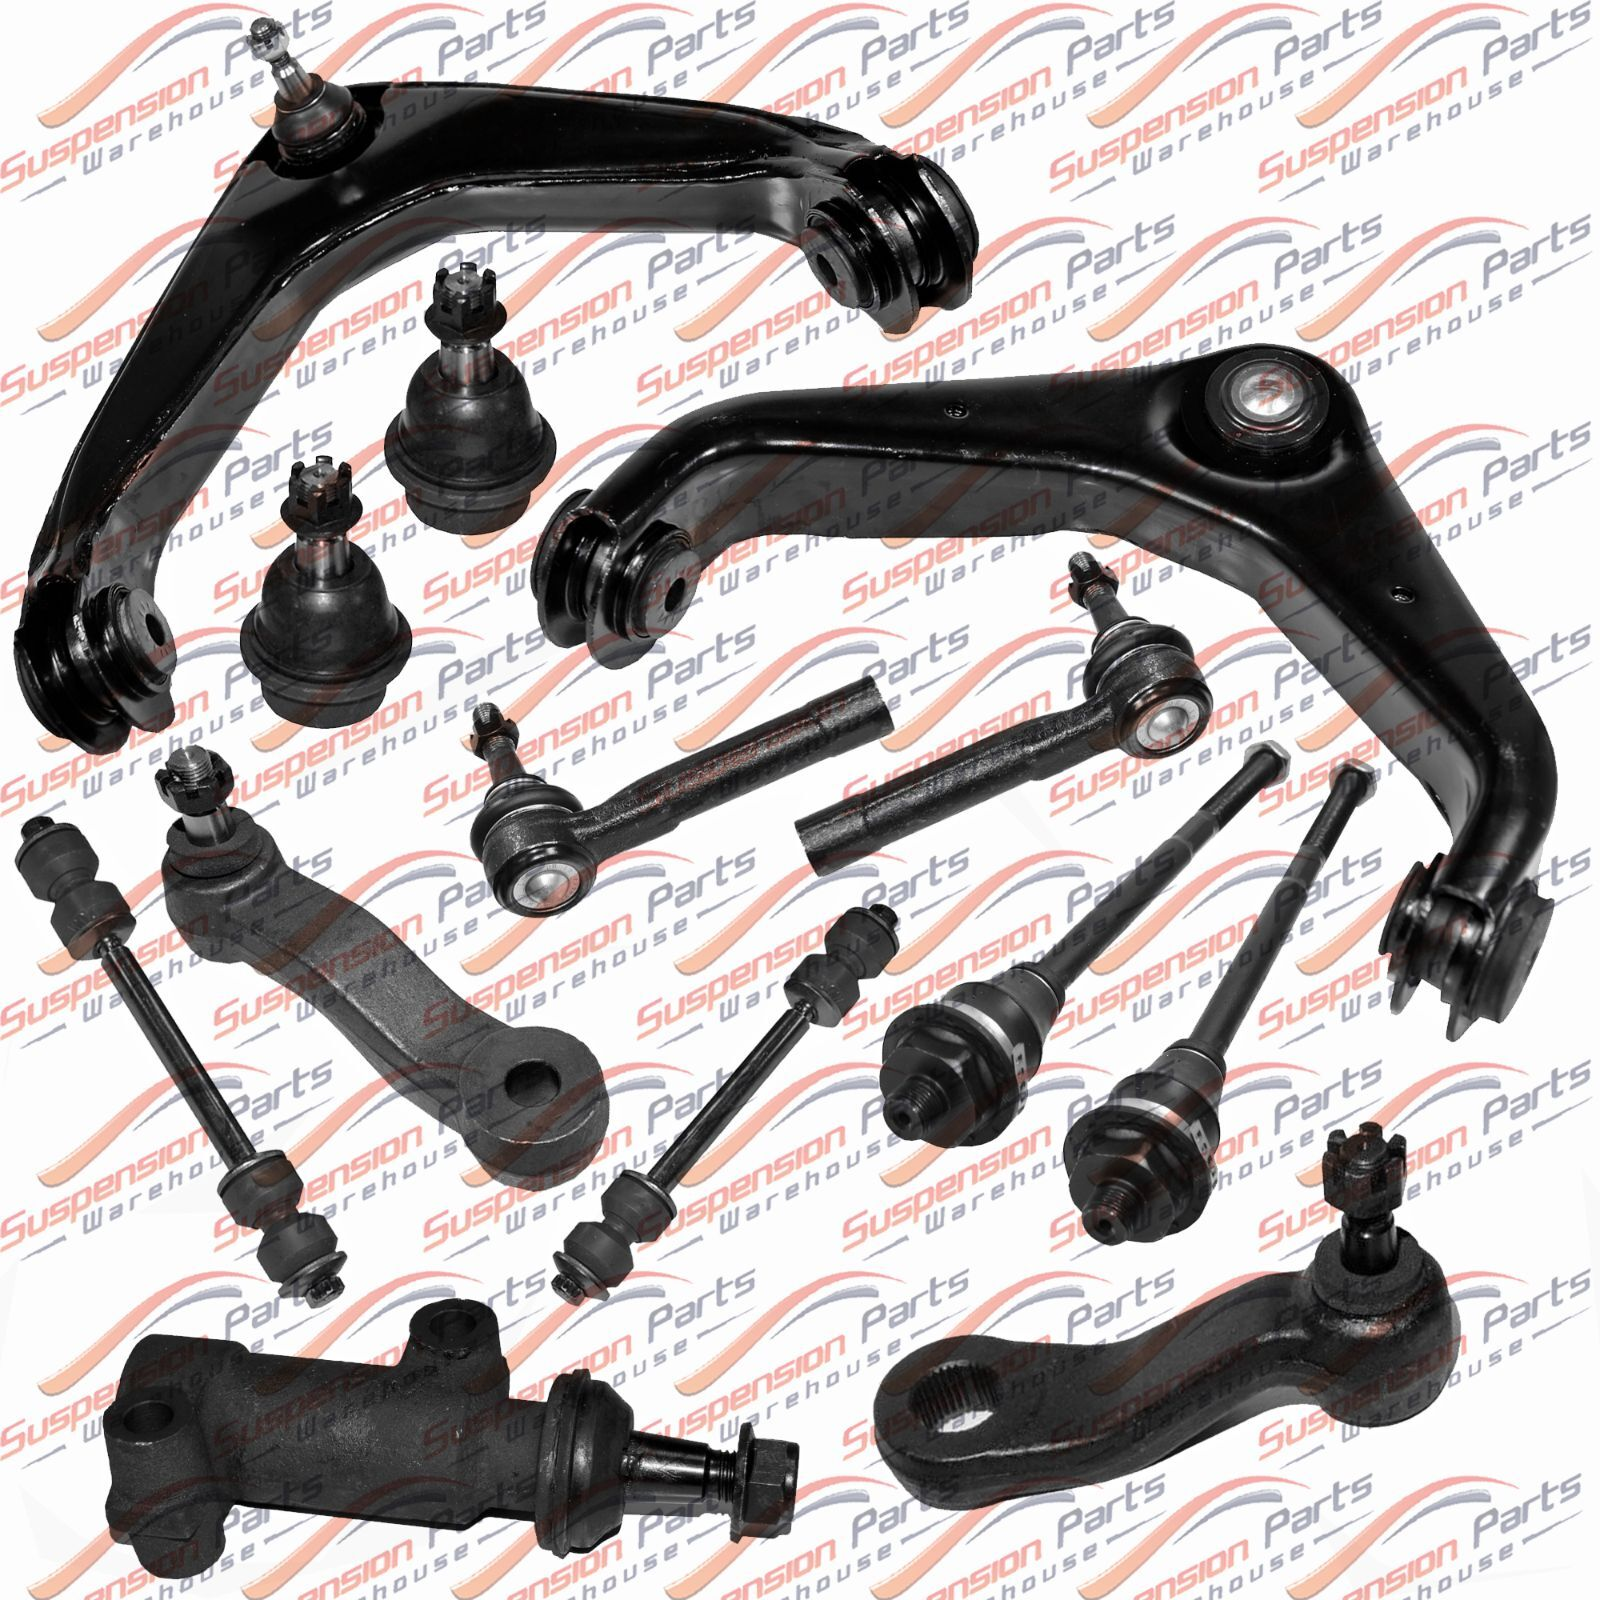 New For 2001-2010 Chevrolet Silverado 2500 HD Suspension Kit GMC Sierra 2500 HD | eBay